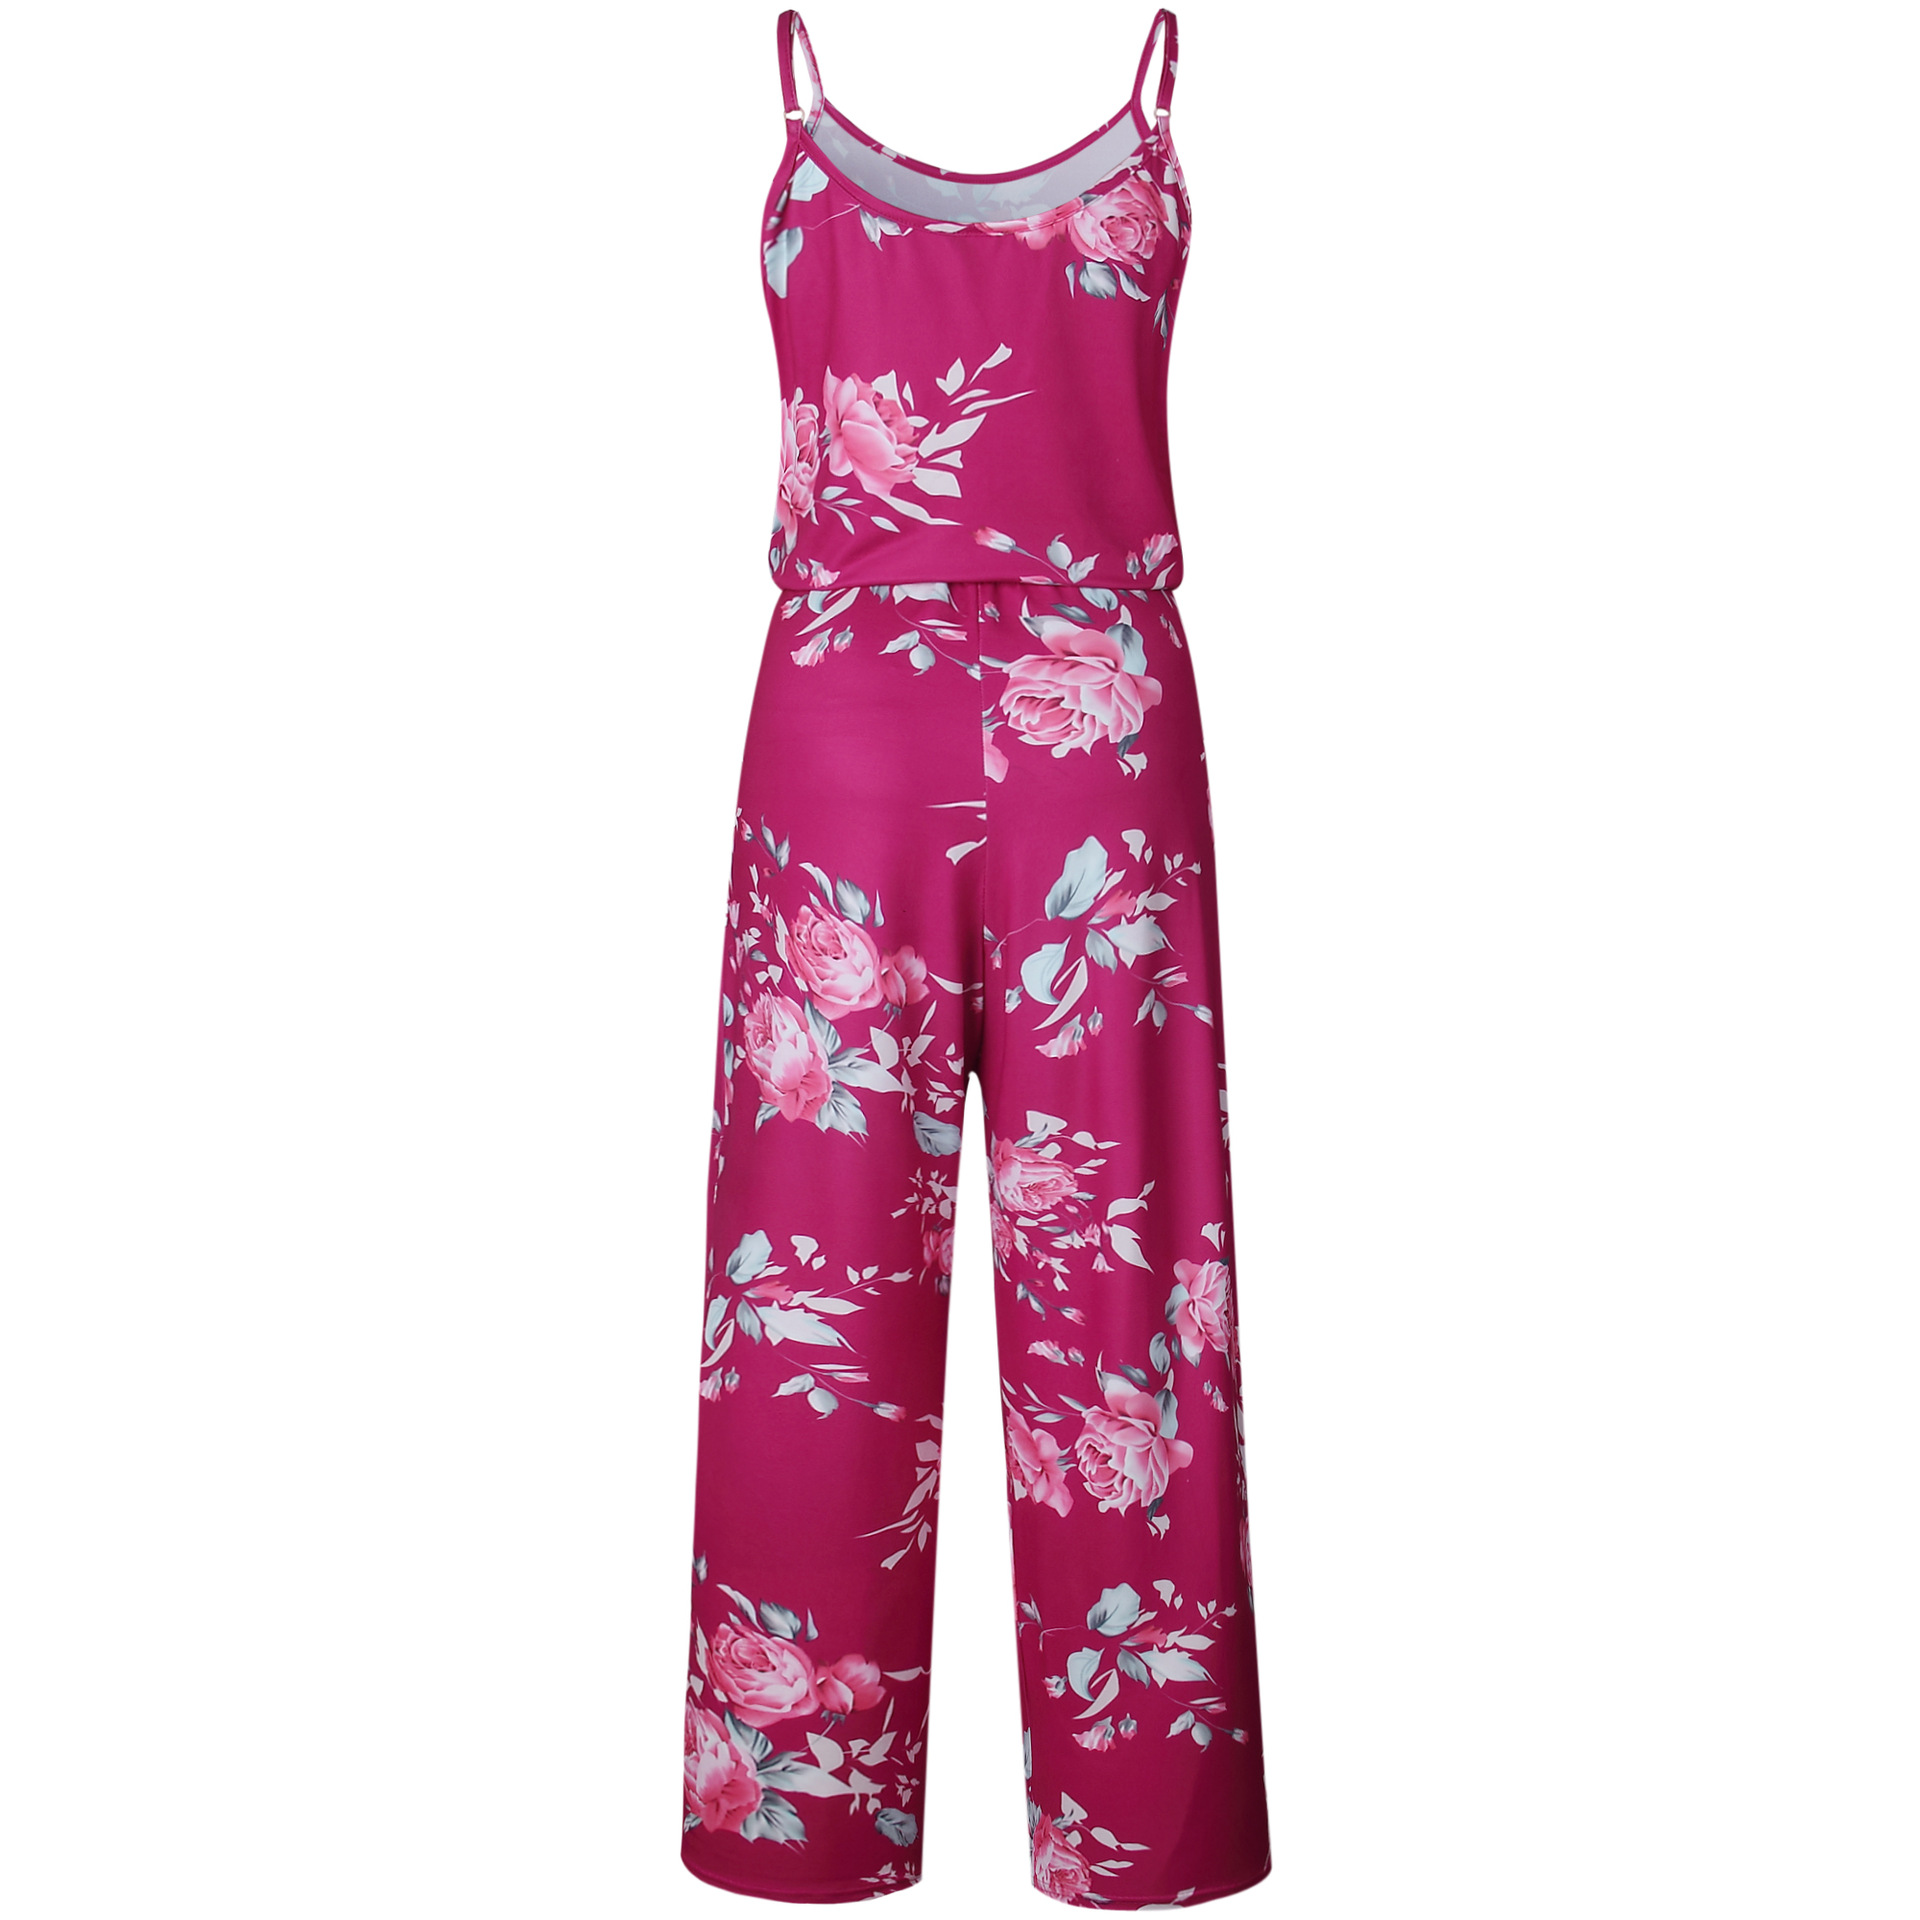 Spaghetti Strap Jumpsuit Women 2018 Summer Long Pants Floral Print Rompers Beach Casual Jumpsuits Sleeveless Sashes Playsuits 37